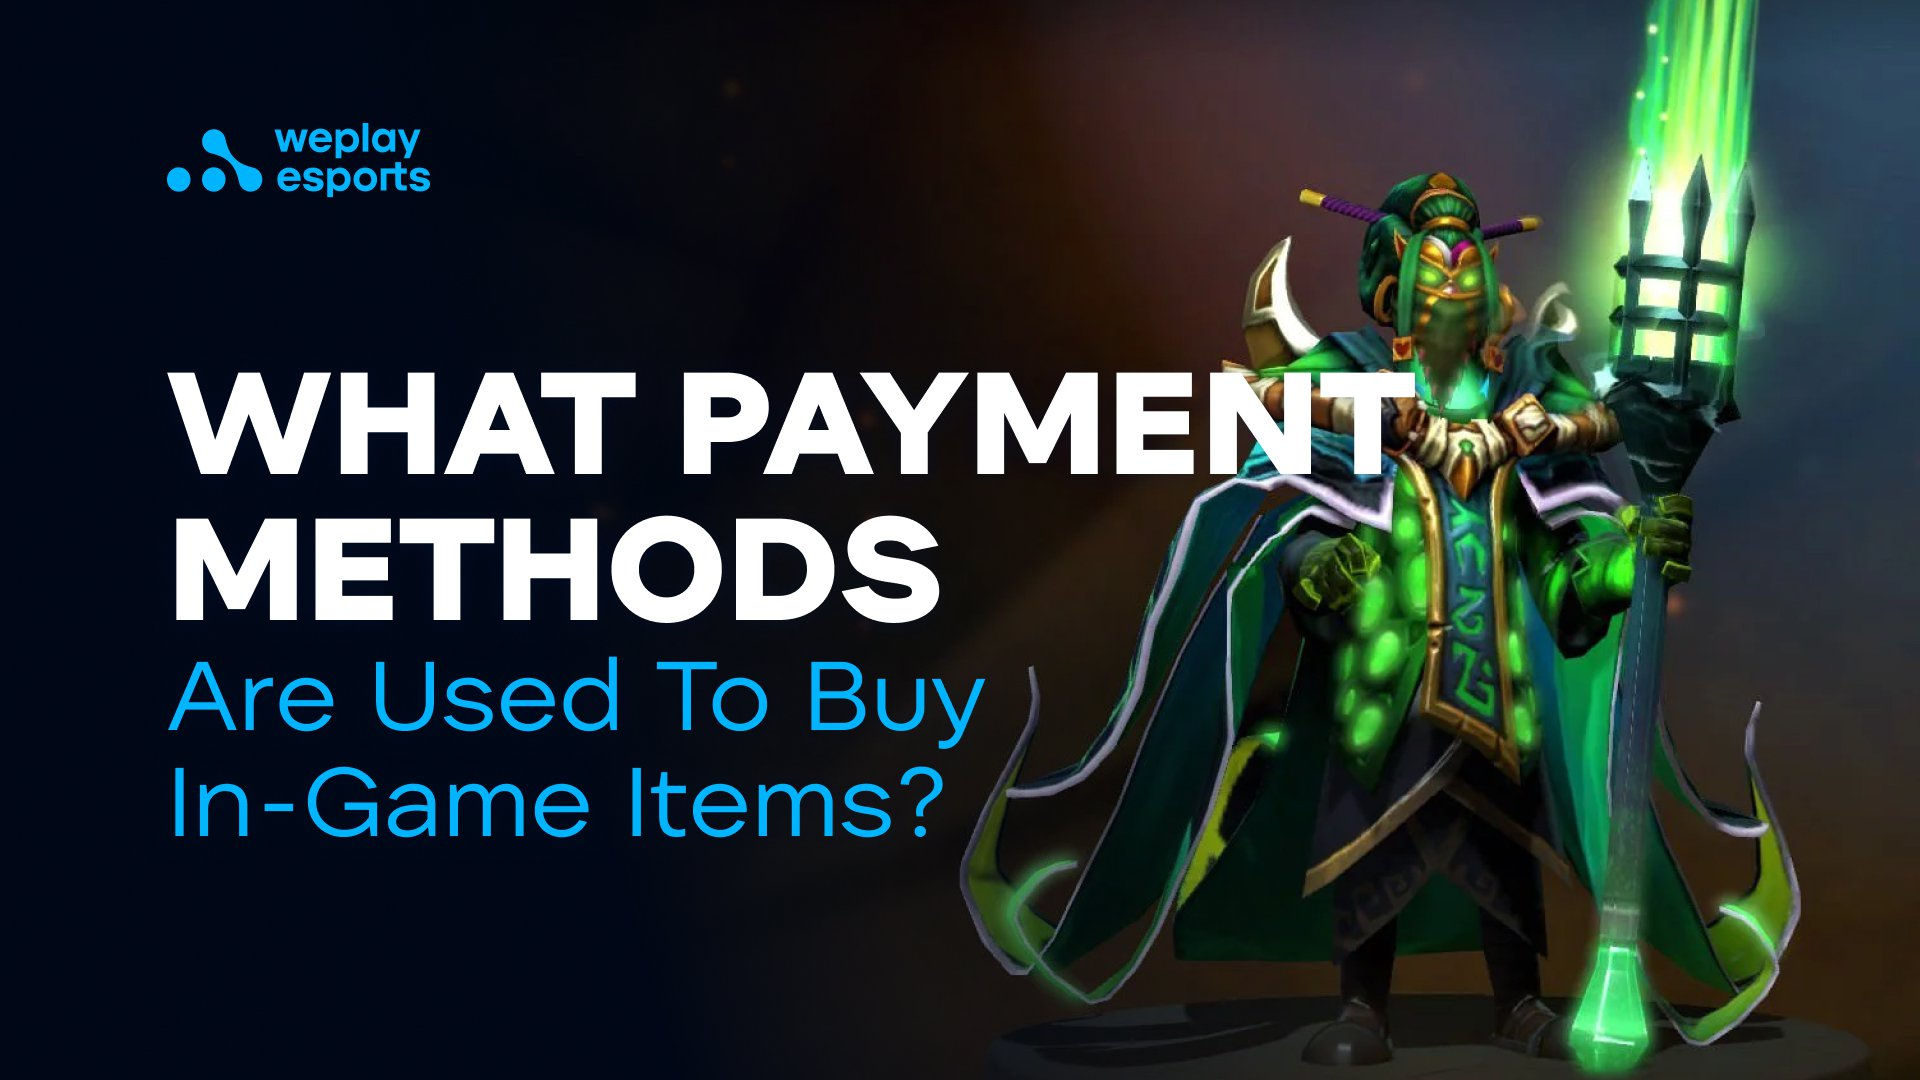 What Payment Methods Are Used To Buy In-Game Items?